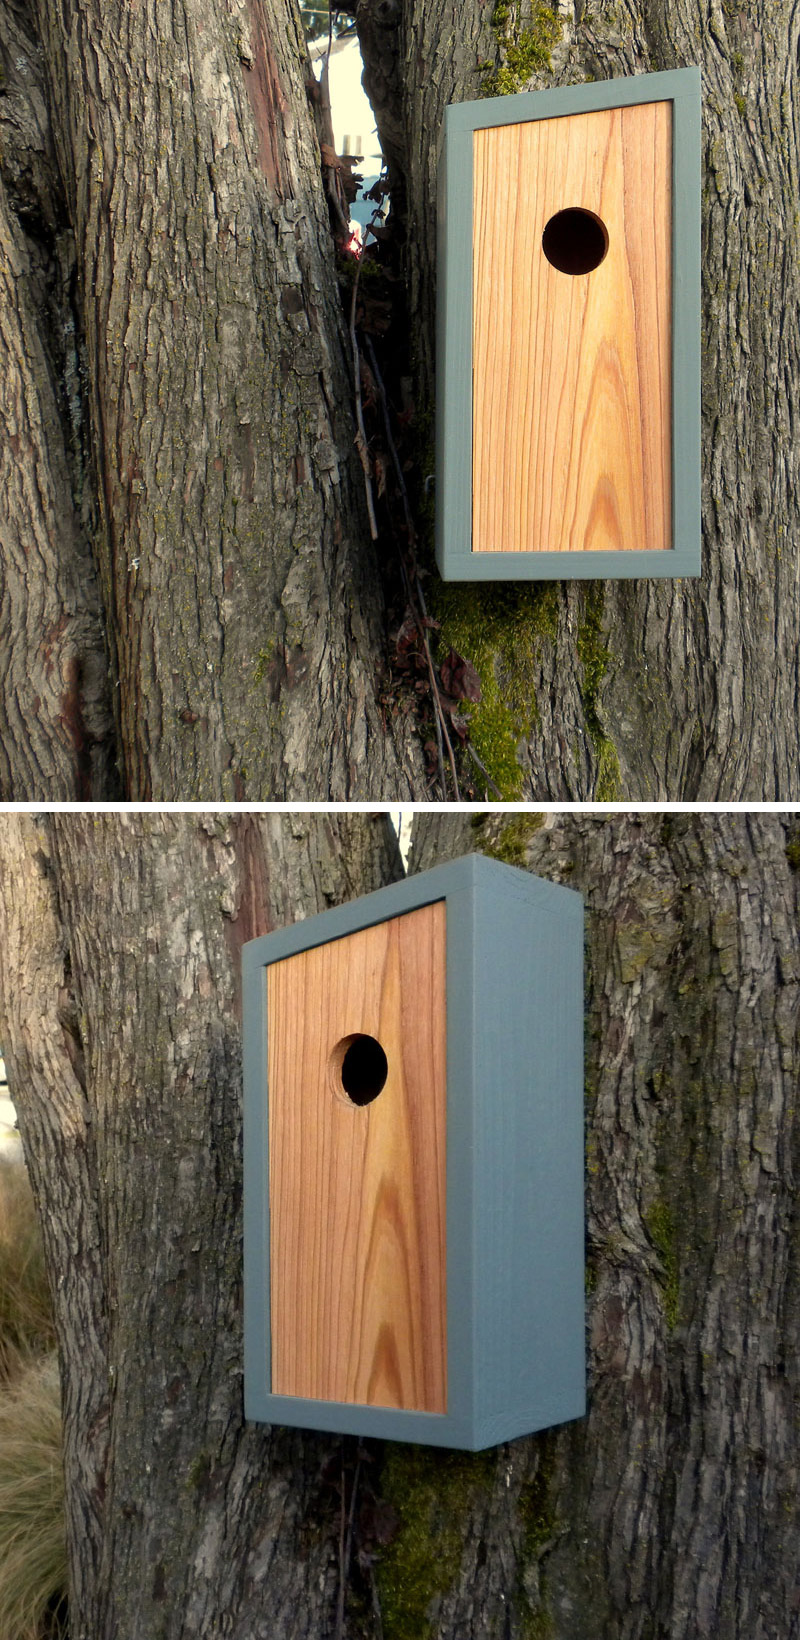 This grey and light wood birdhouse has a minimalist design.